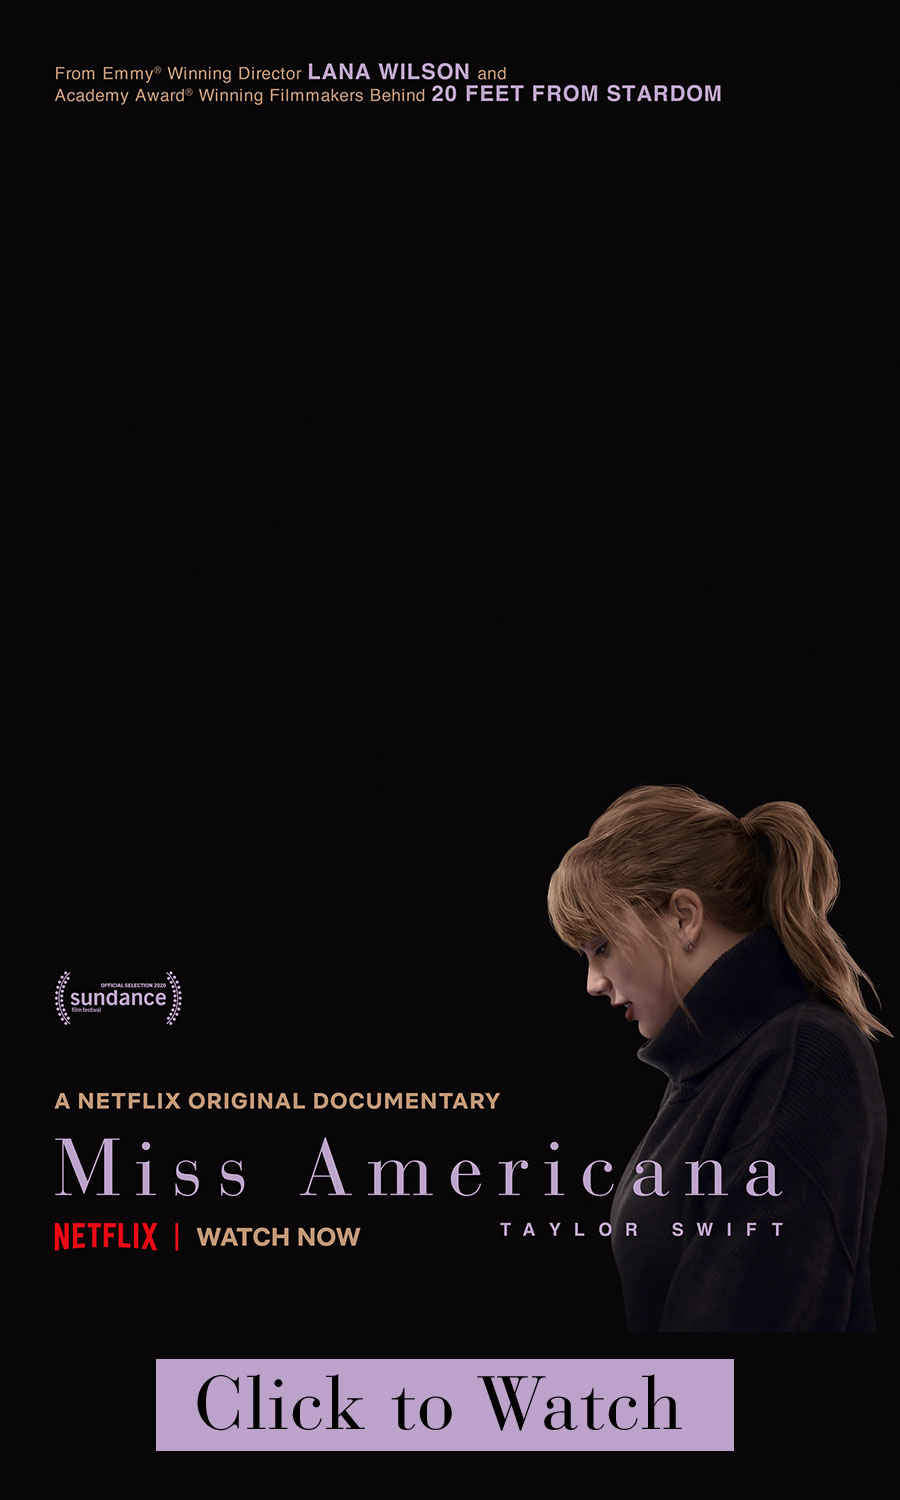 A Netflix original documentary Miss Americana.